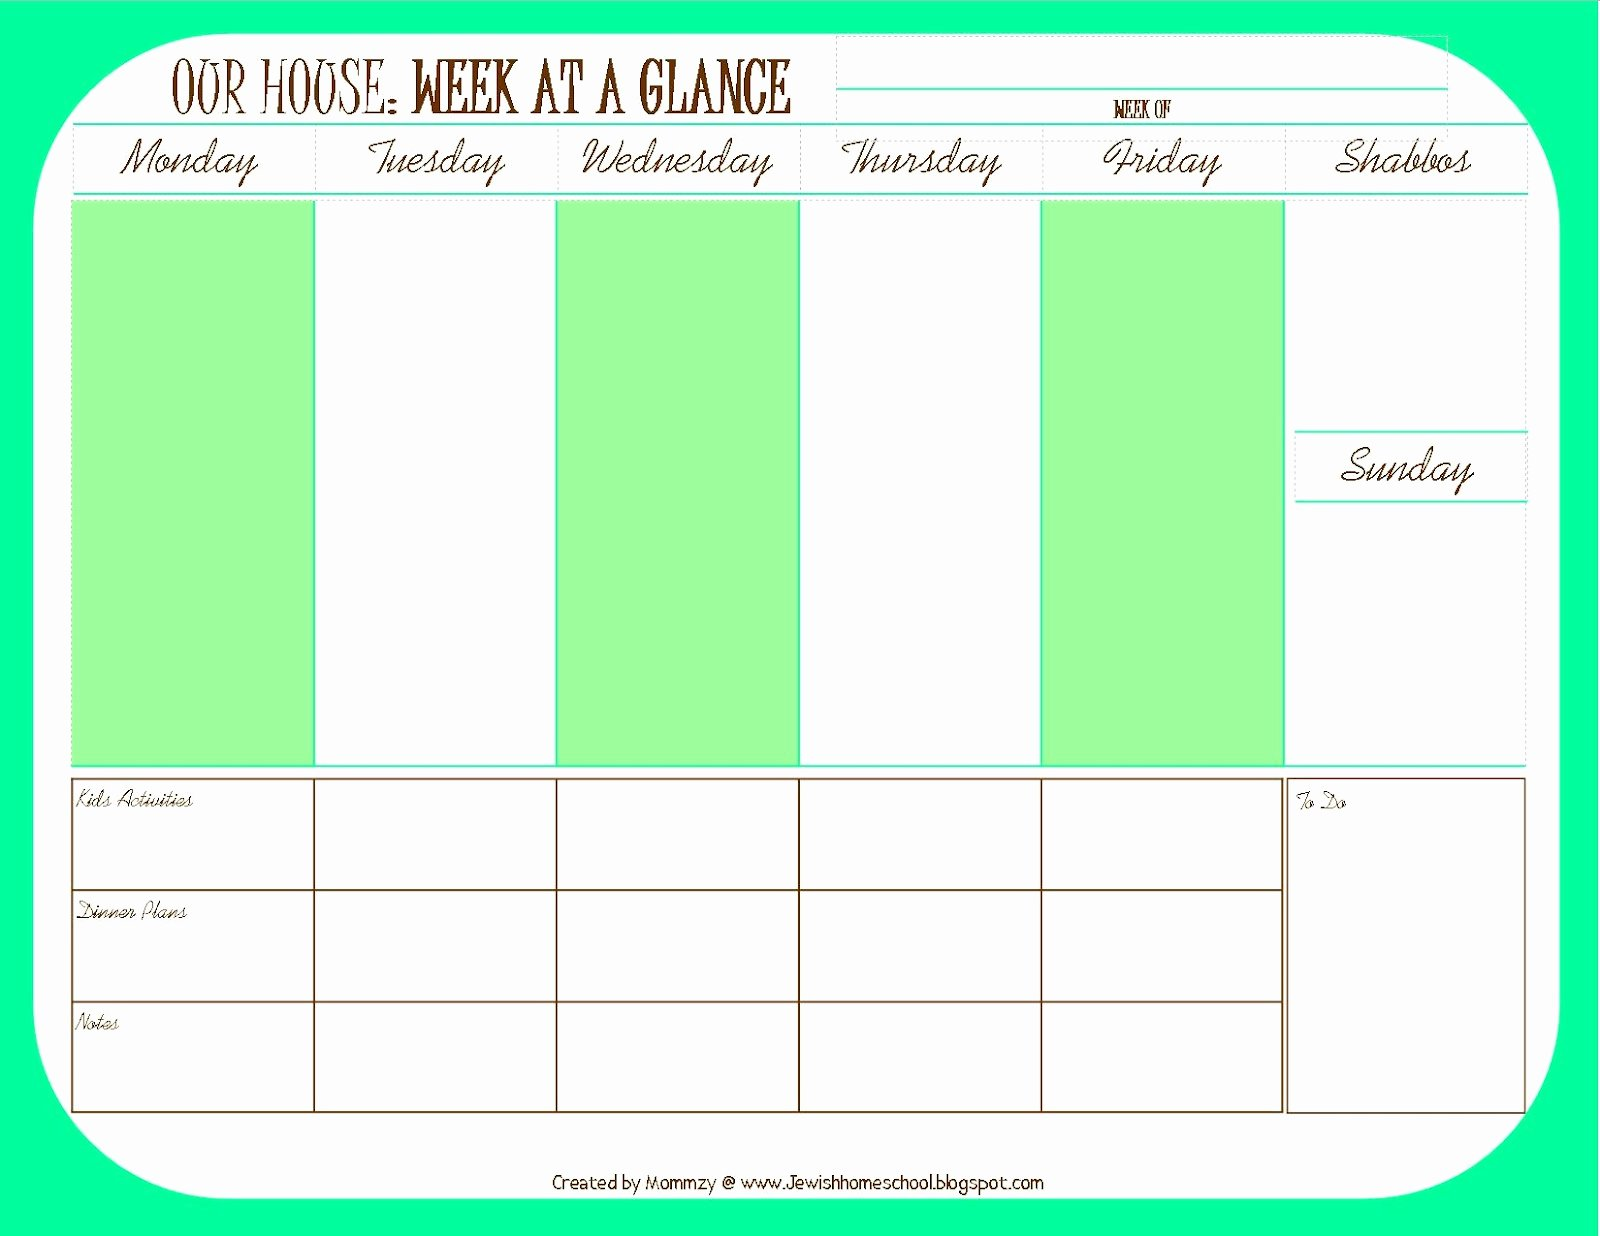 Week Day Schedule Template Lovely A Jewish Homeschool Blog Weekly Schedule